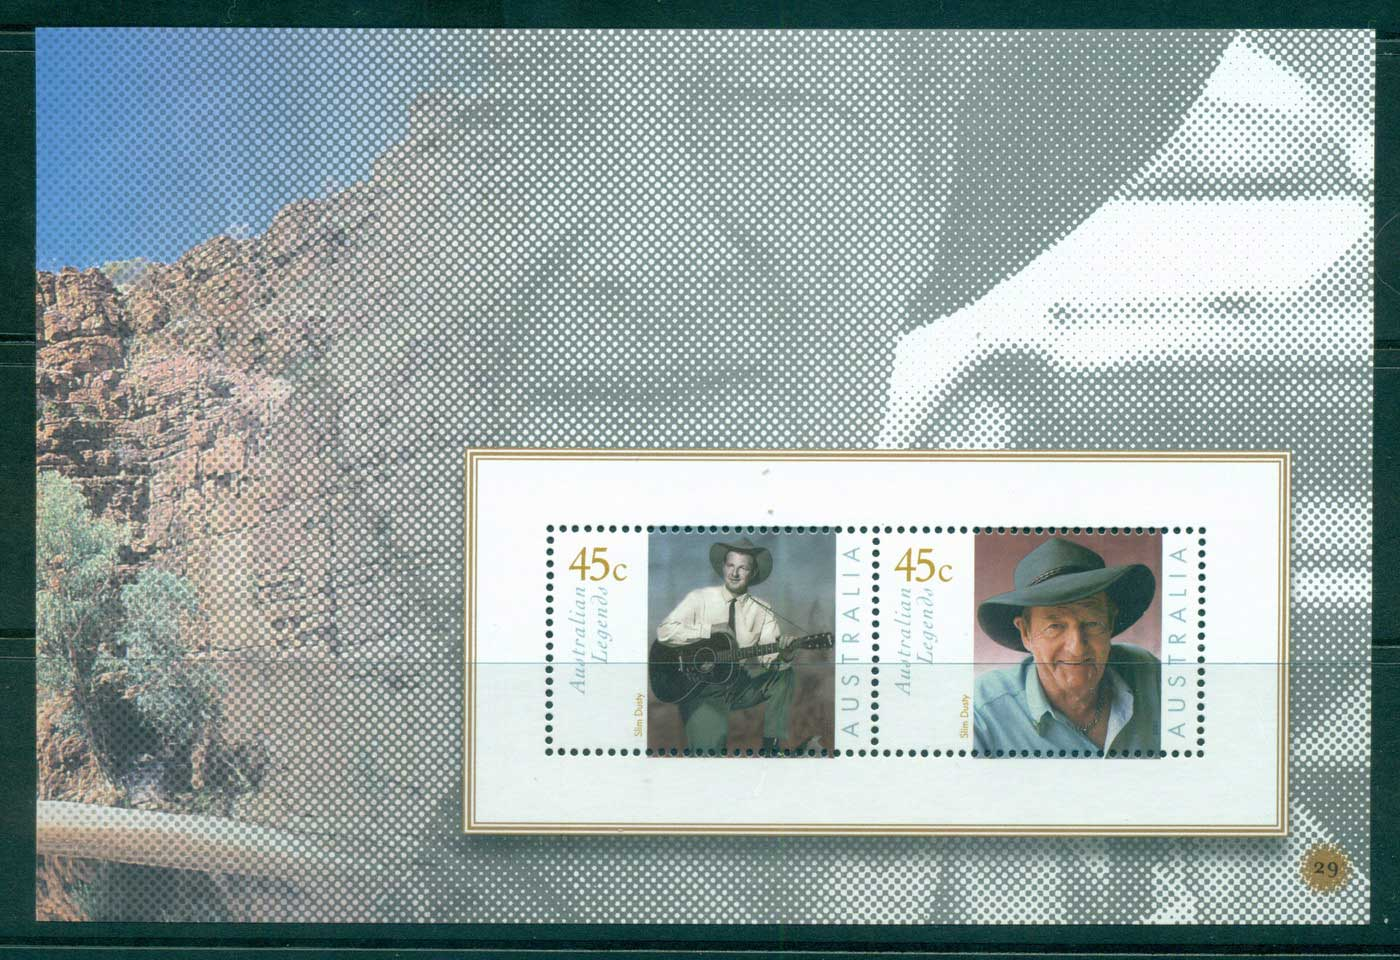 Australia 2010 #29 Australian Legends Slim Dusty Booklet pane MUH lot34643